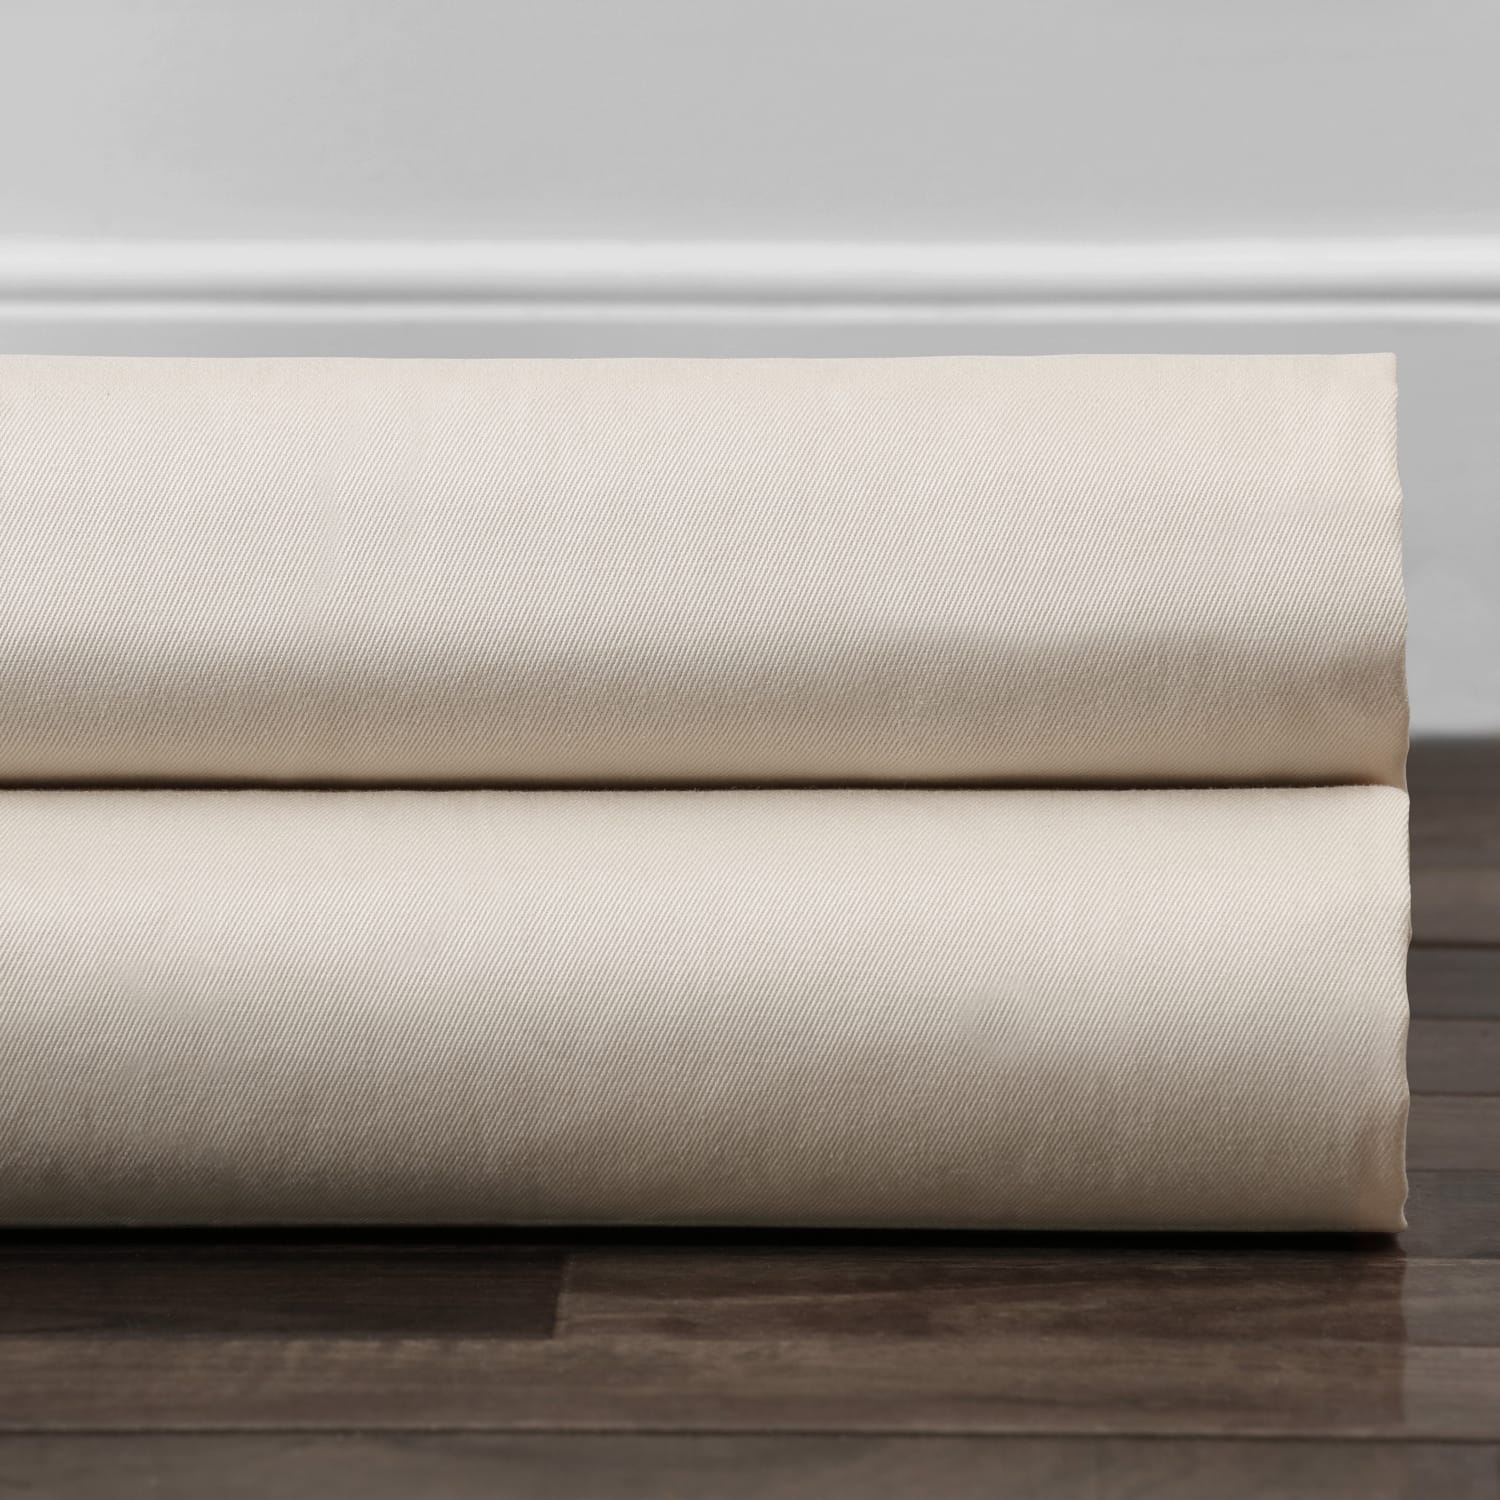 English Cream Solid Cotton Deluxe Tab Top Curtain